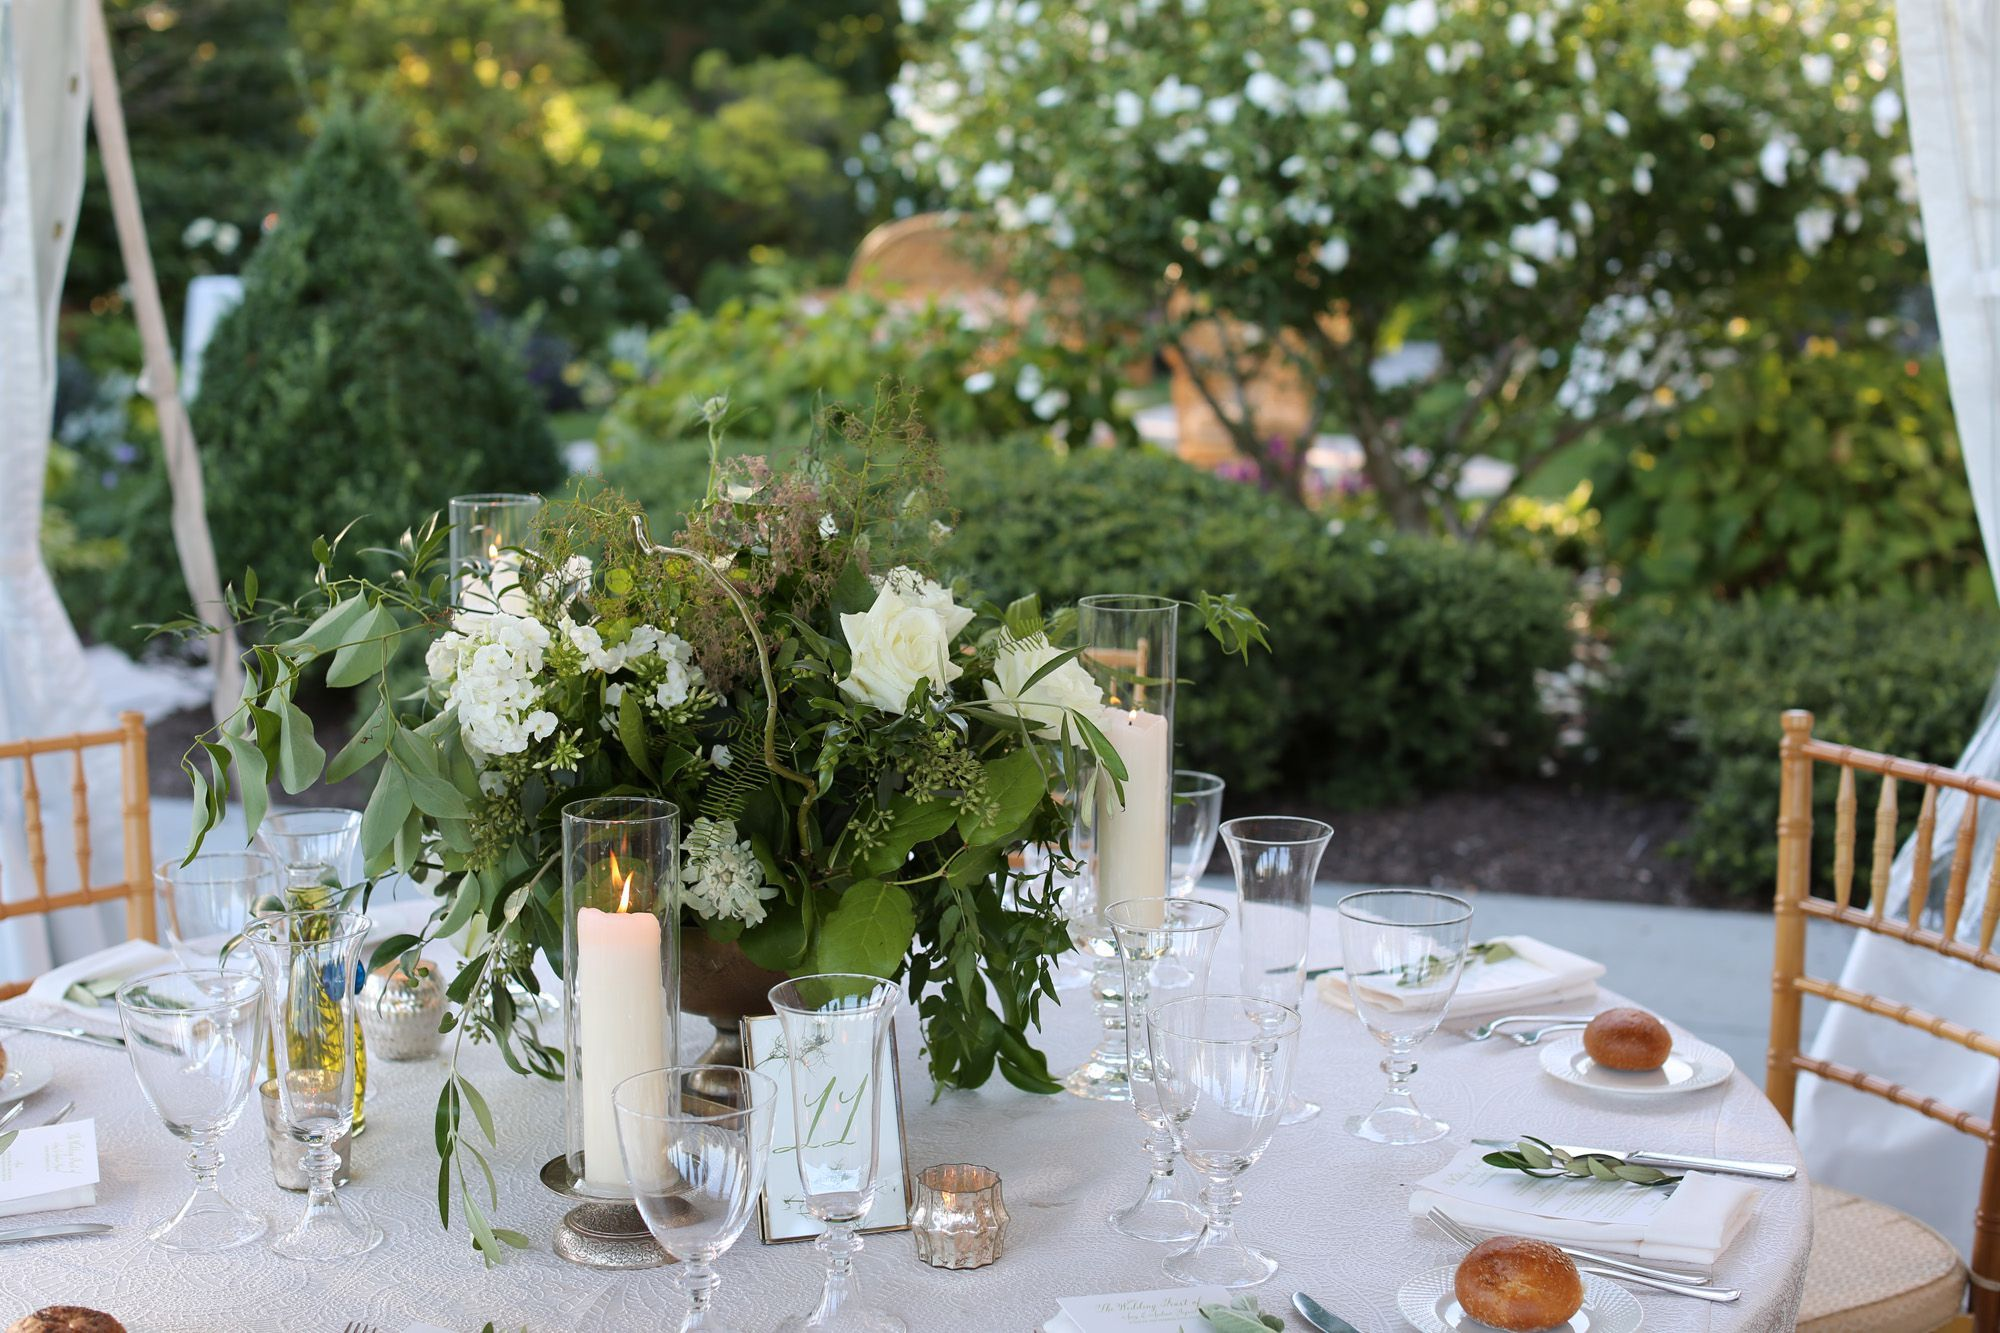 10 Garden Party Ideas - Summer Outdoor Party Decor